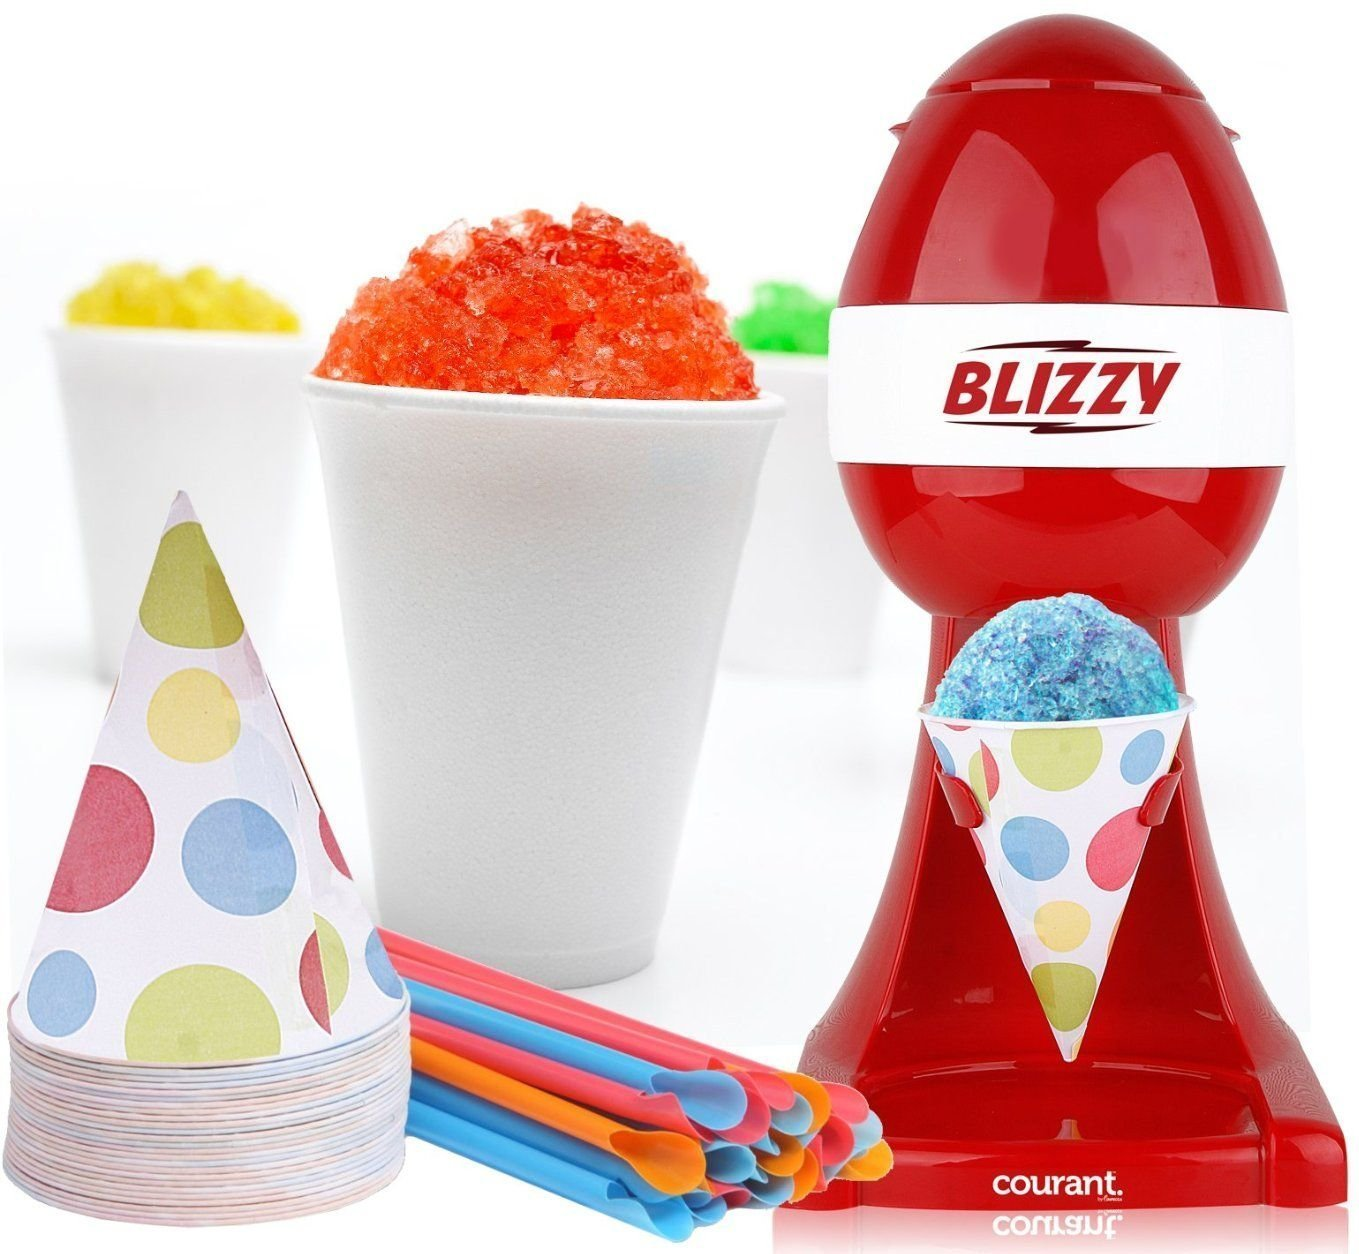 BLIZZY Snow Cone Maker Set | Includes: (1) Blizzy Electric Ice Shaver (20) 6 oz. Paper Cone Cups (20) Plastic Straws by Blizzy